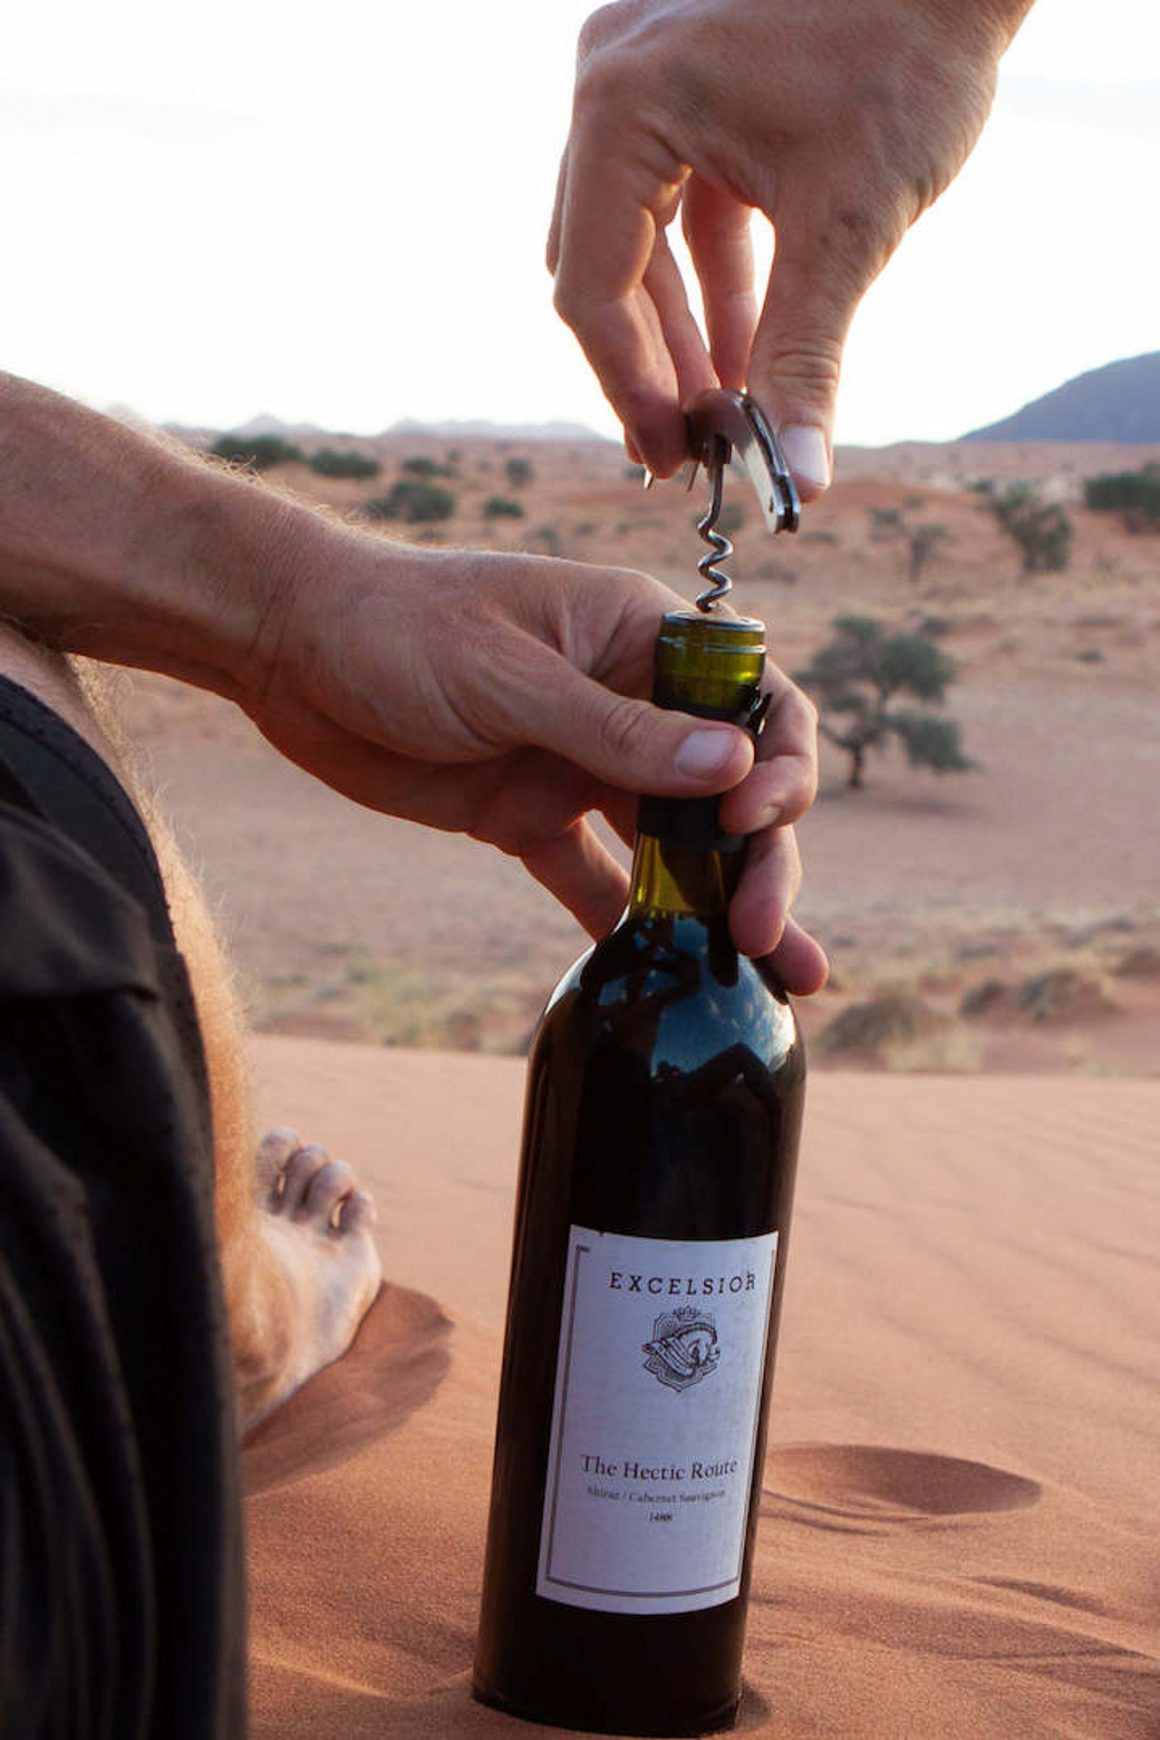 Chris opening a bottle of our Hectic Route wine on a sand dune near our campsite in Namibrand, Namibia.